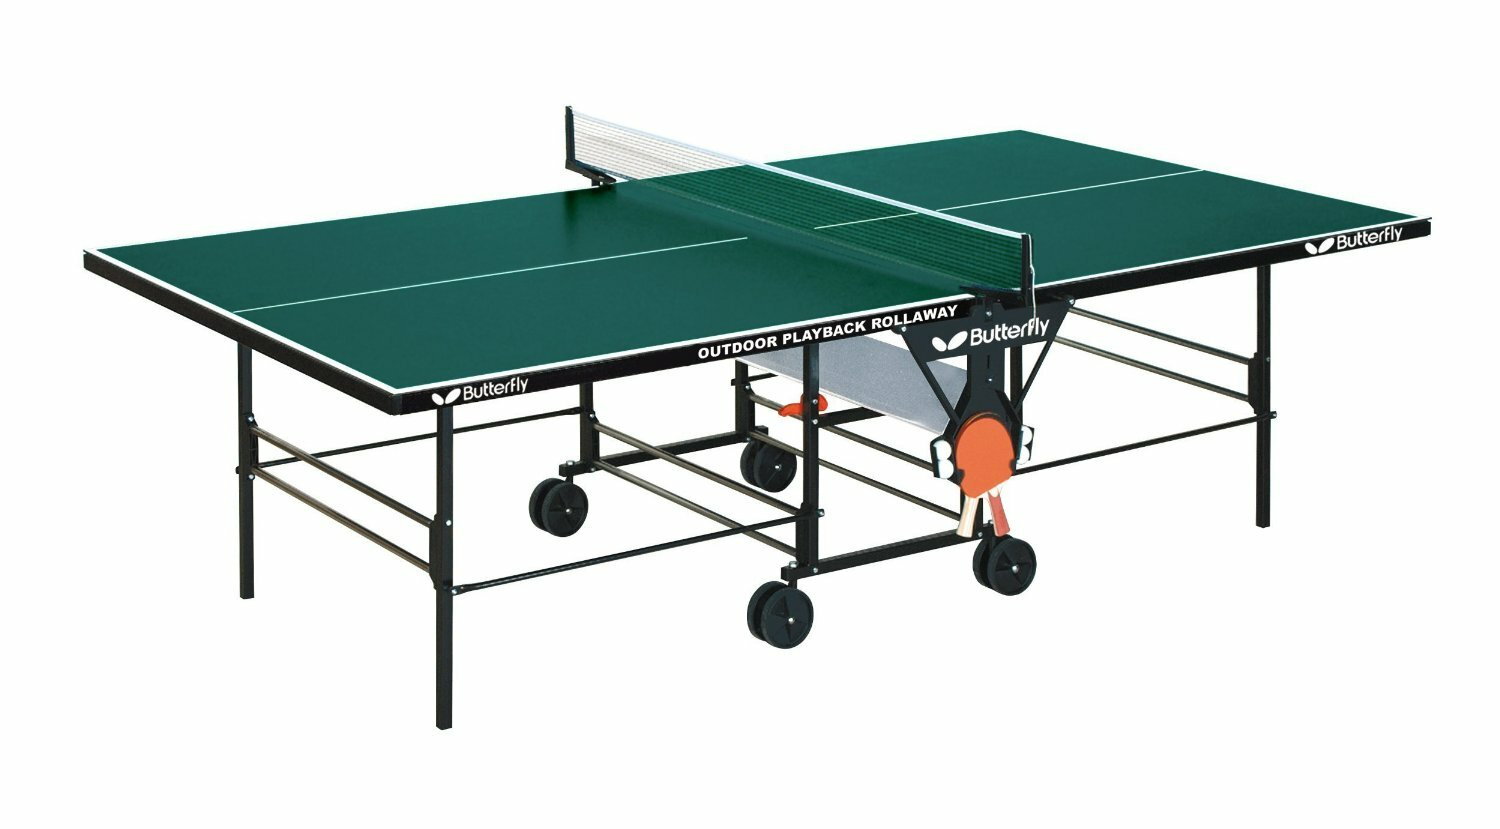 Butterfly Playback Outdoor Table Tennis Table Wayfair